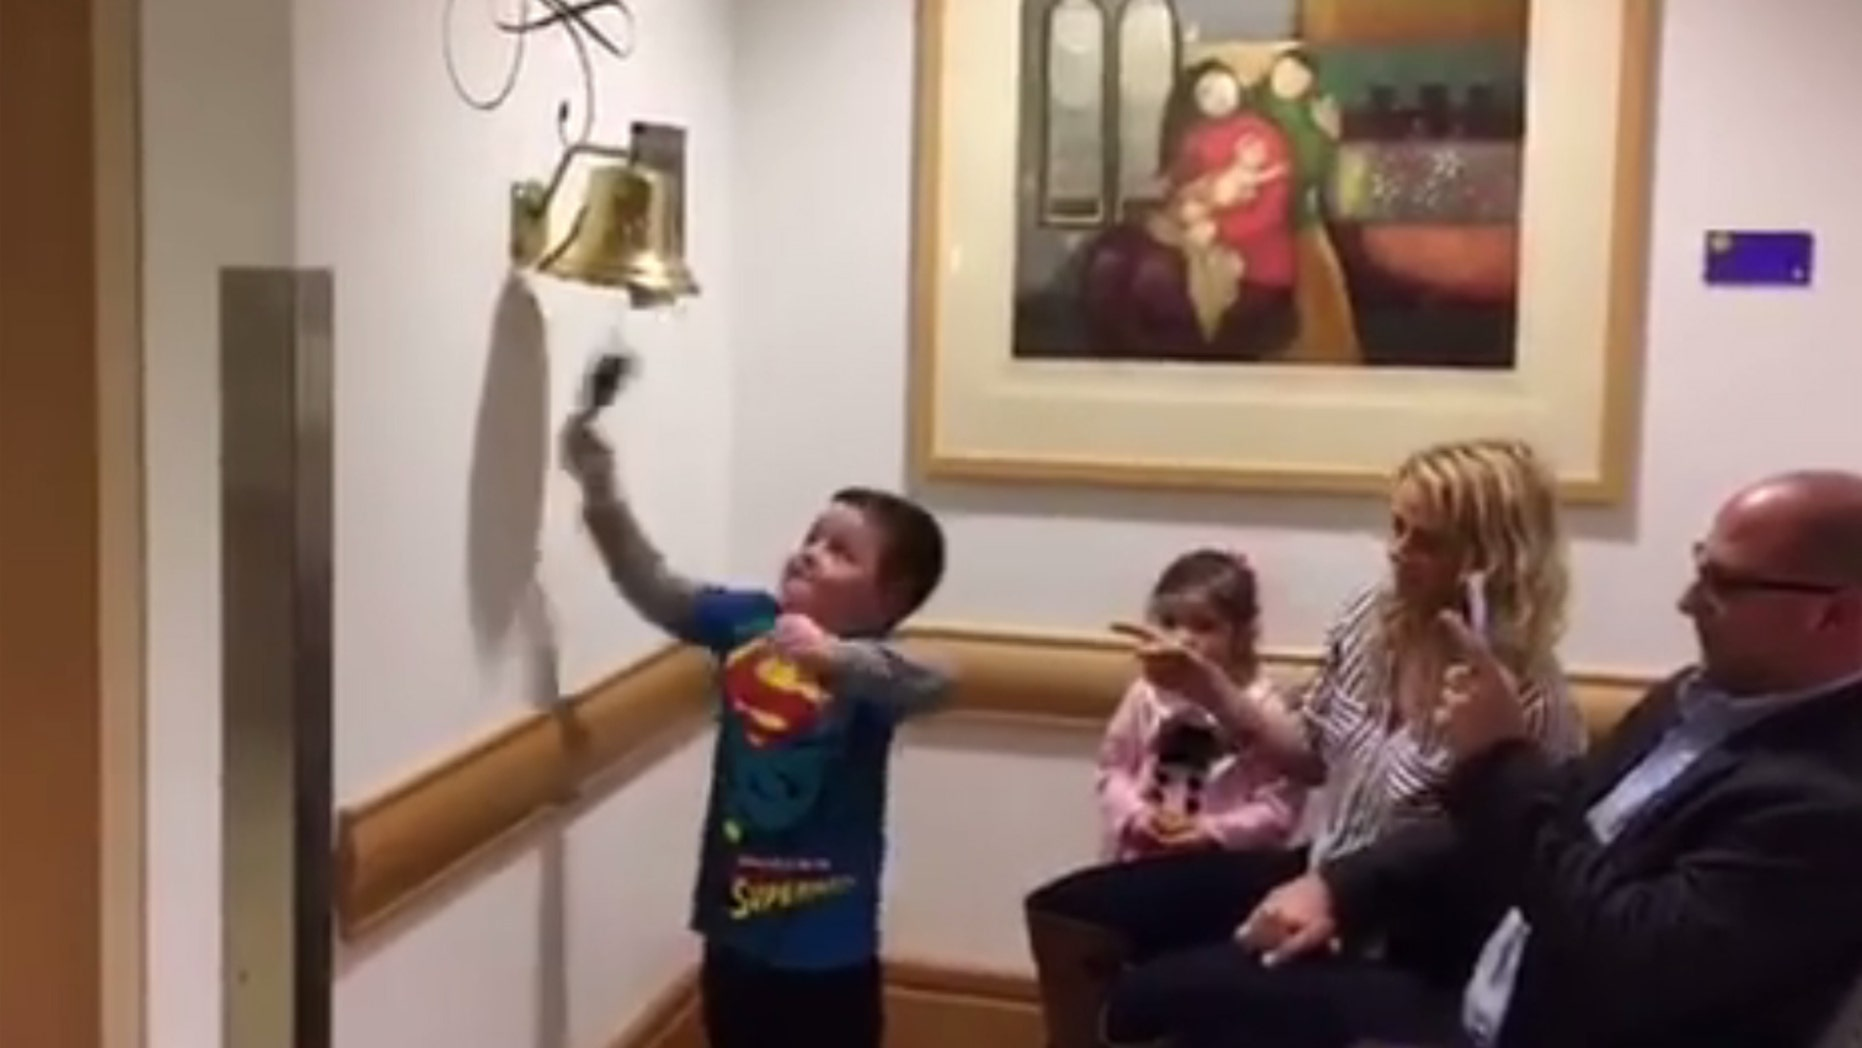 Jimmy Spagnolo celebrated the end of his chemotherapy treatment.